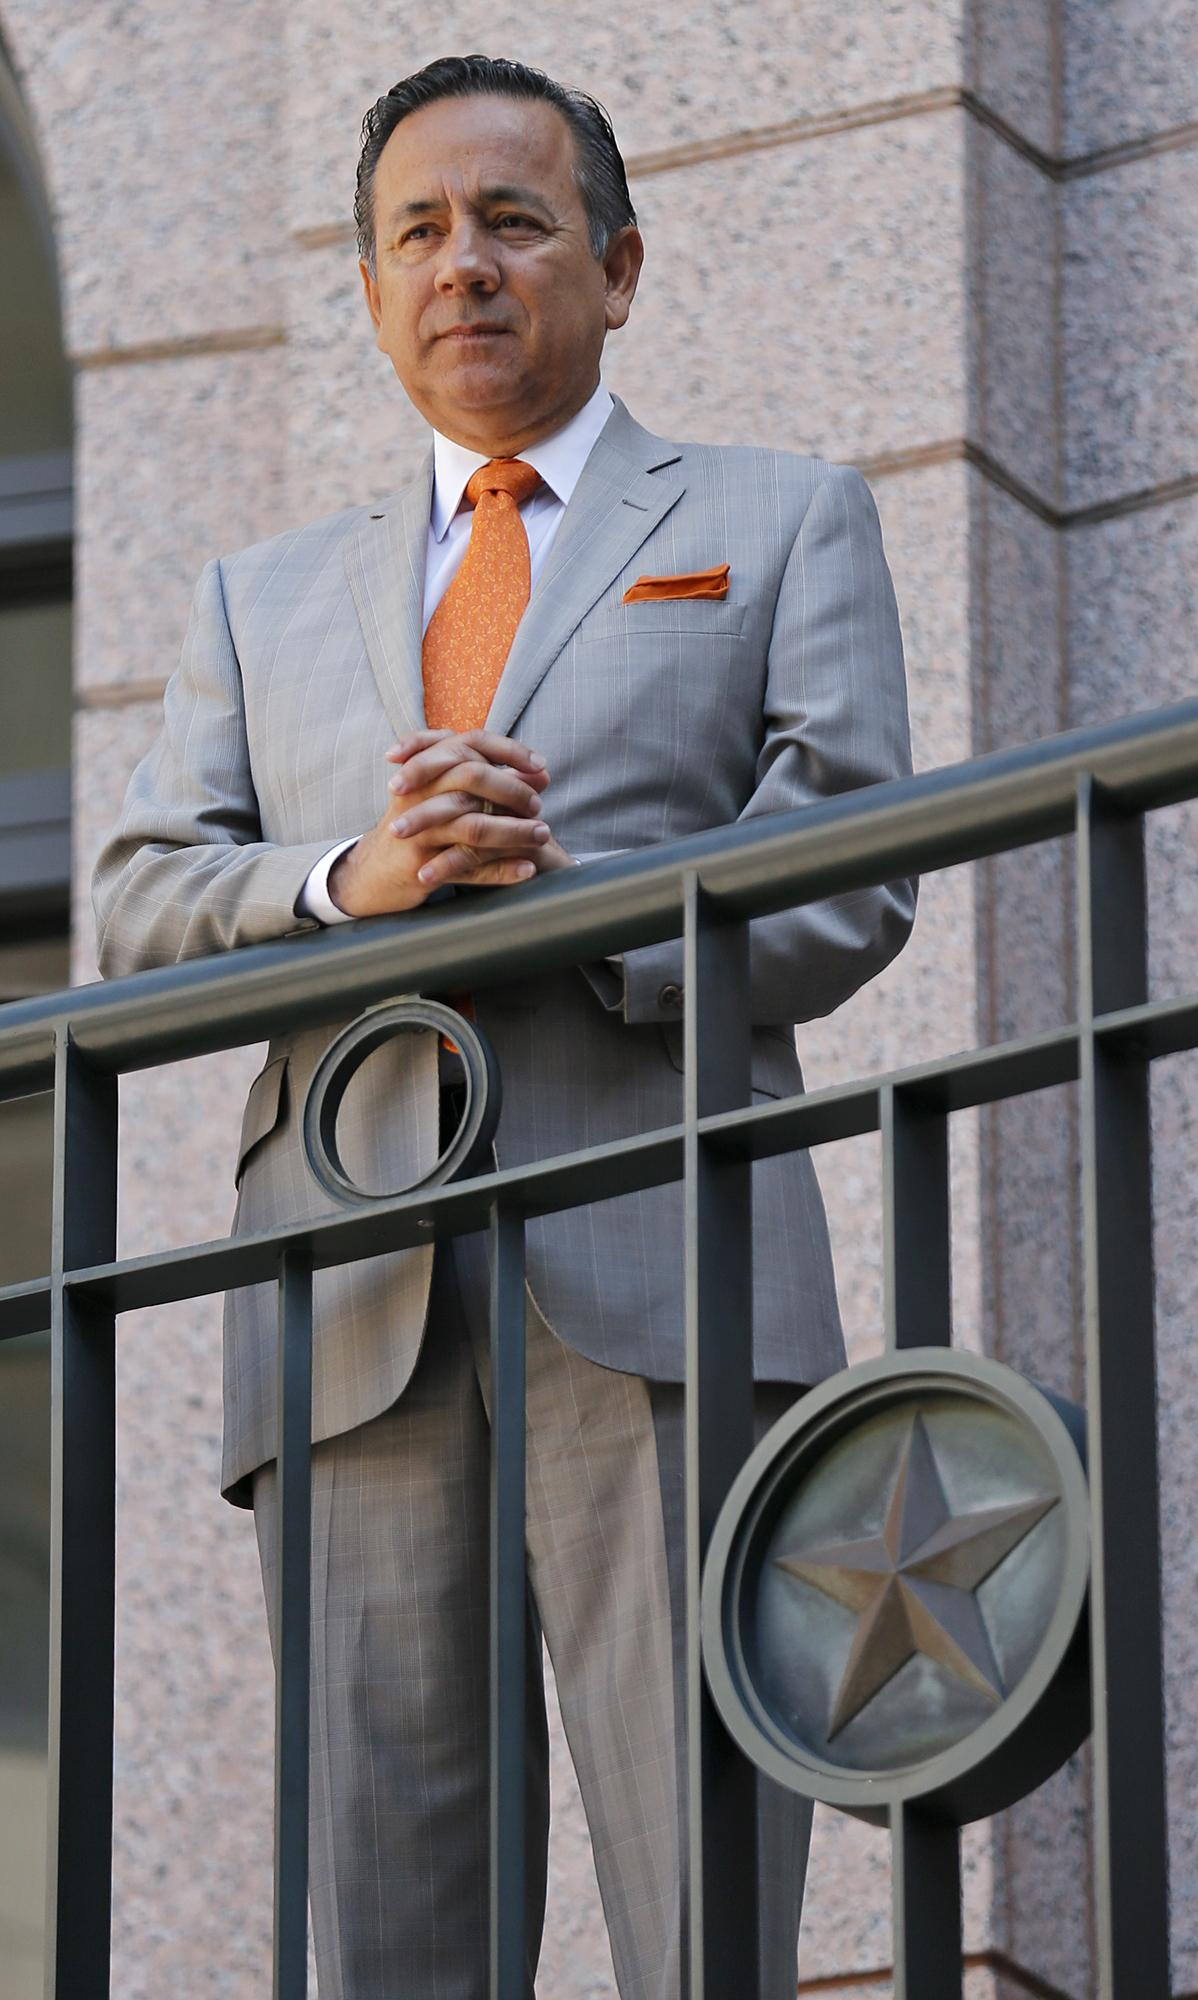 Cantu Told Fbi Her Affair With Uresti Began In 2010 With